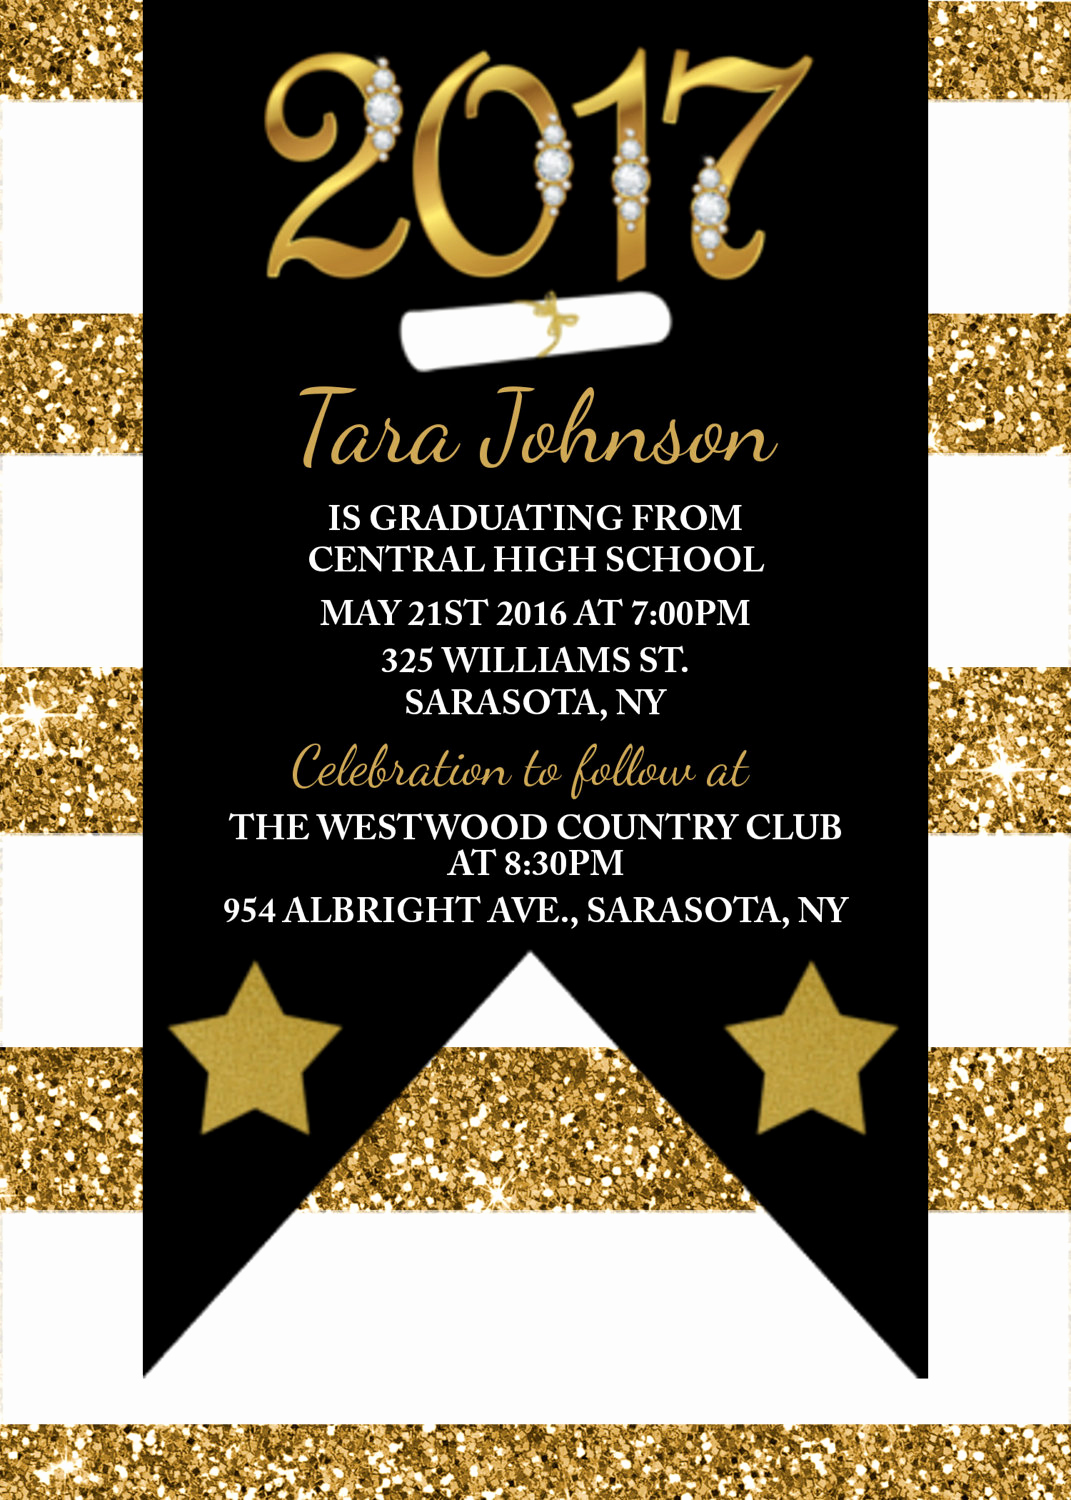 Graduation Invitation Templates Microsoft Publisher Unique Graduation Invite Templates Free